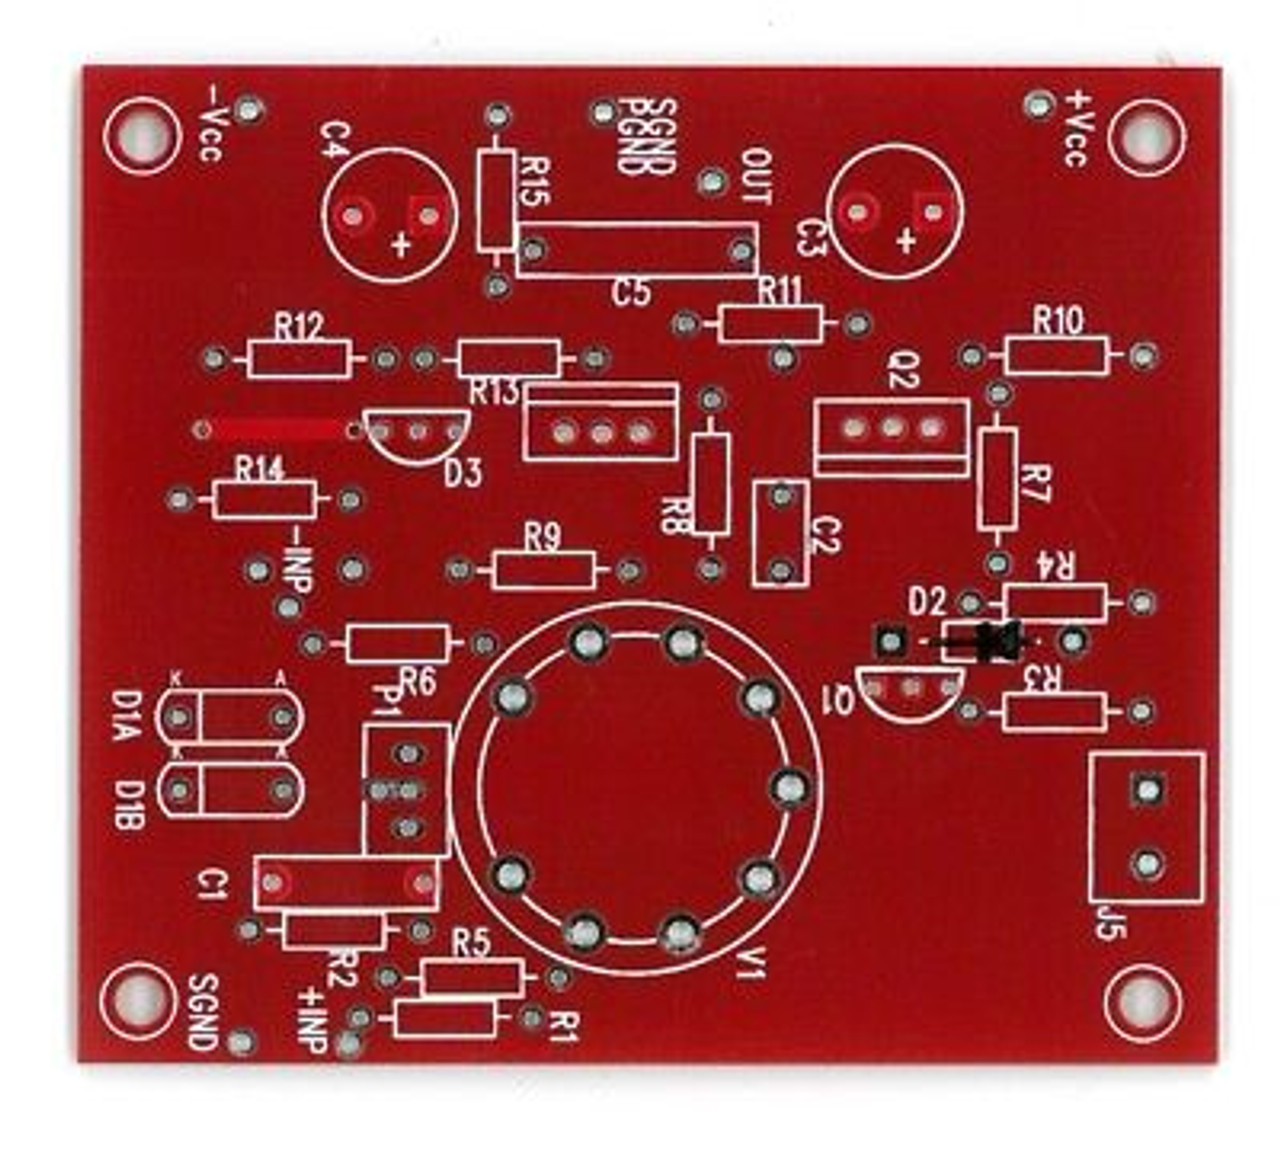 Borbely balanced tube input mosfet output linestage single ch preamplifier  PCB !